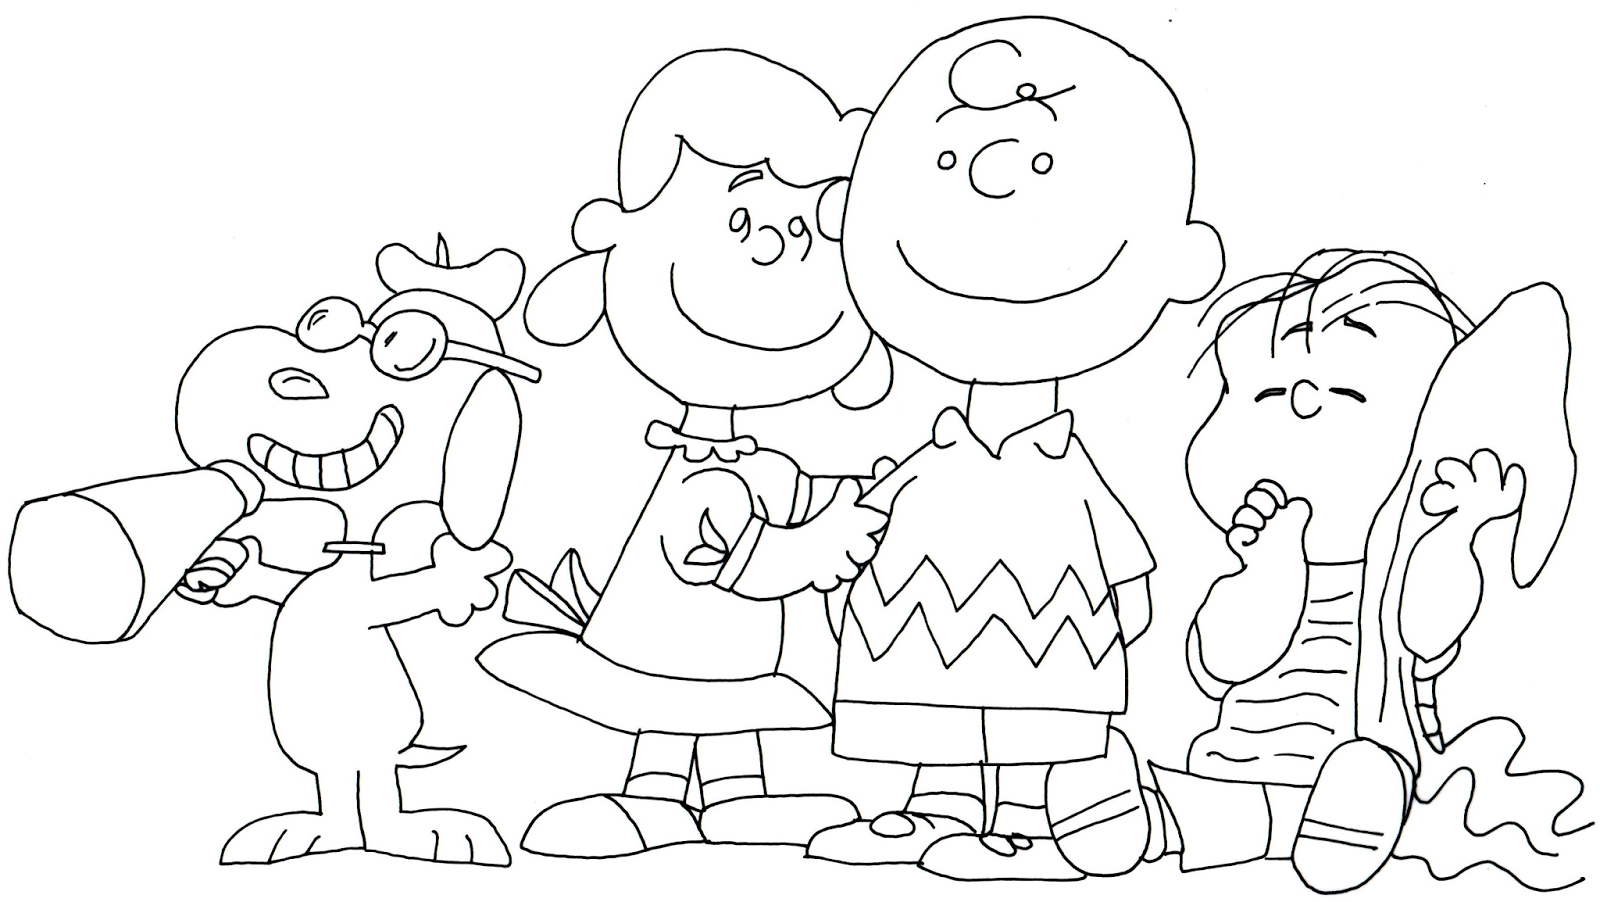 Exelent Charlie Brown And Lucy Coloring Pages Gift - Framing ...